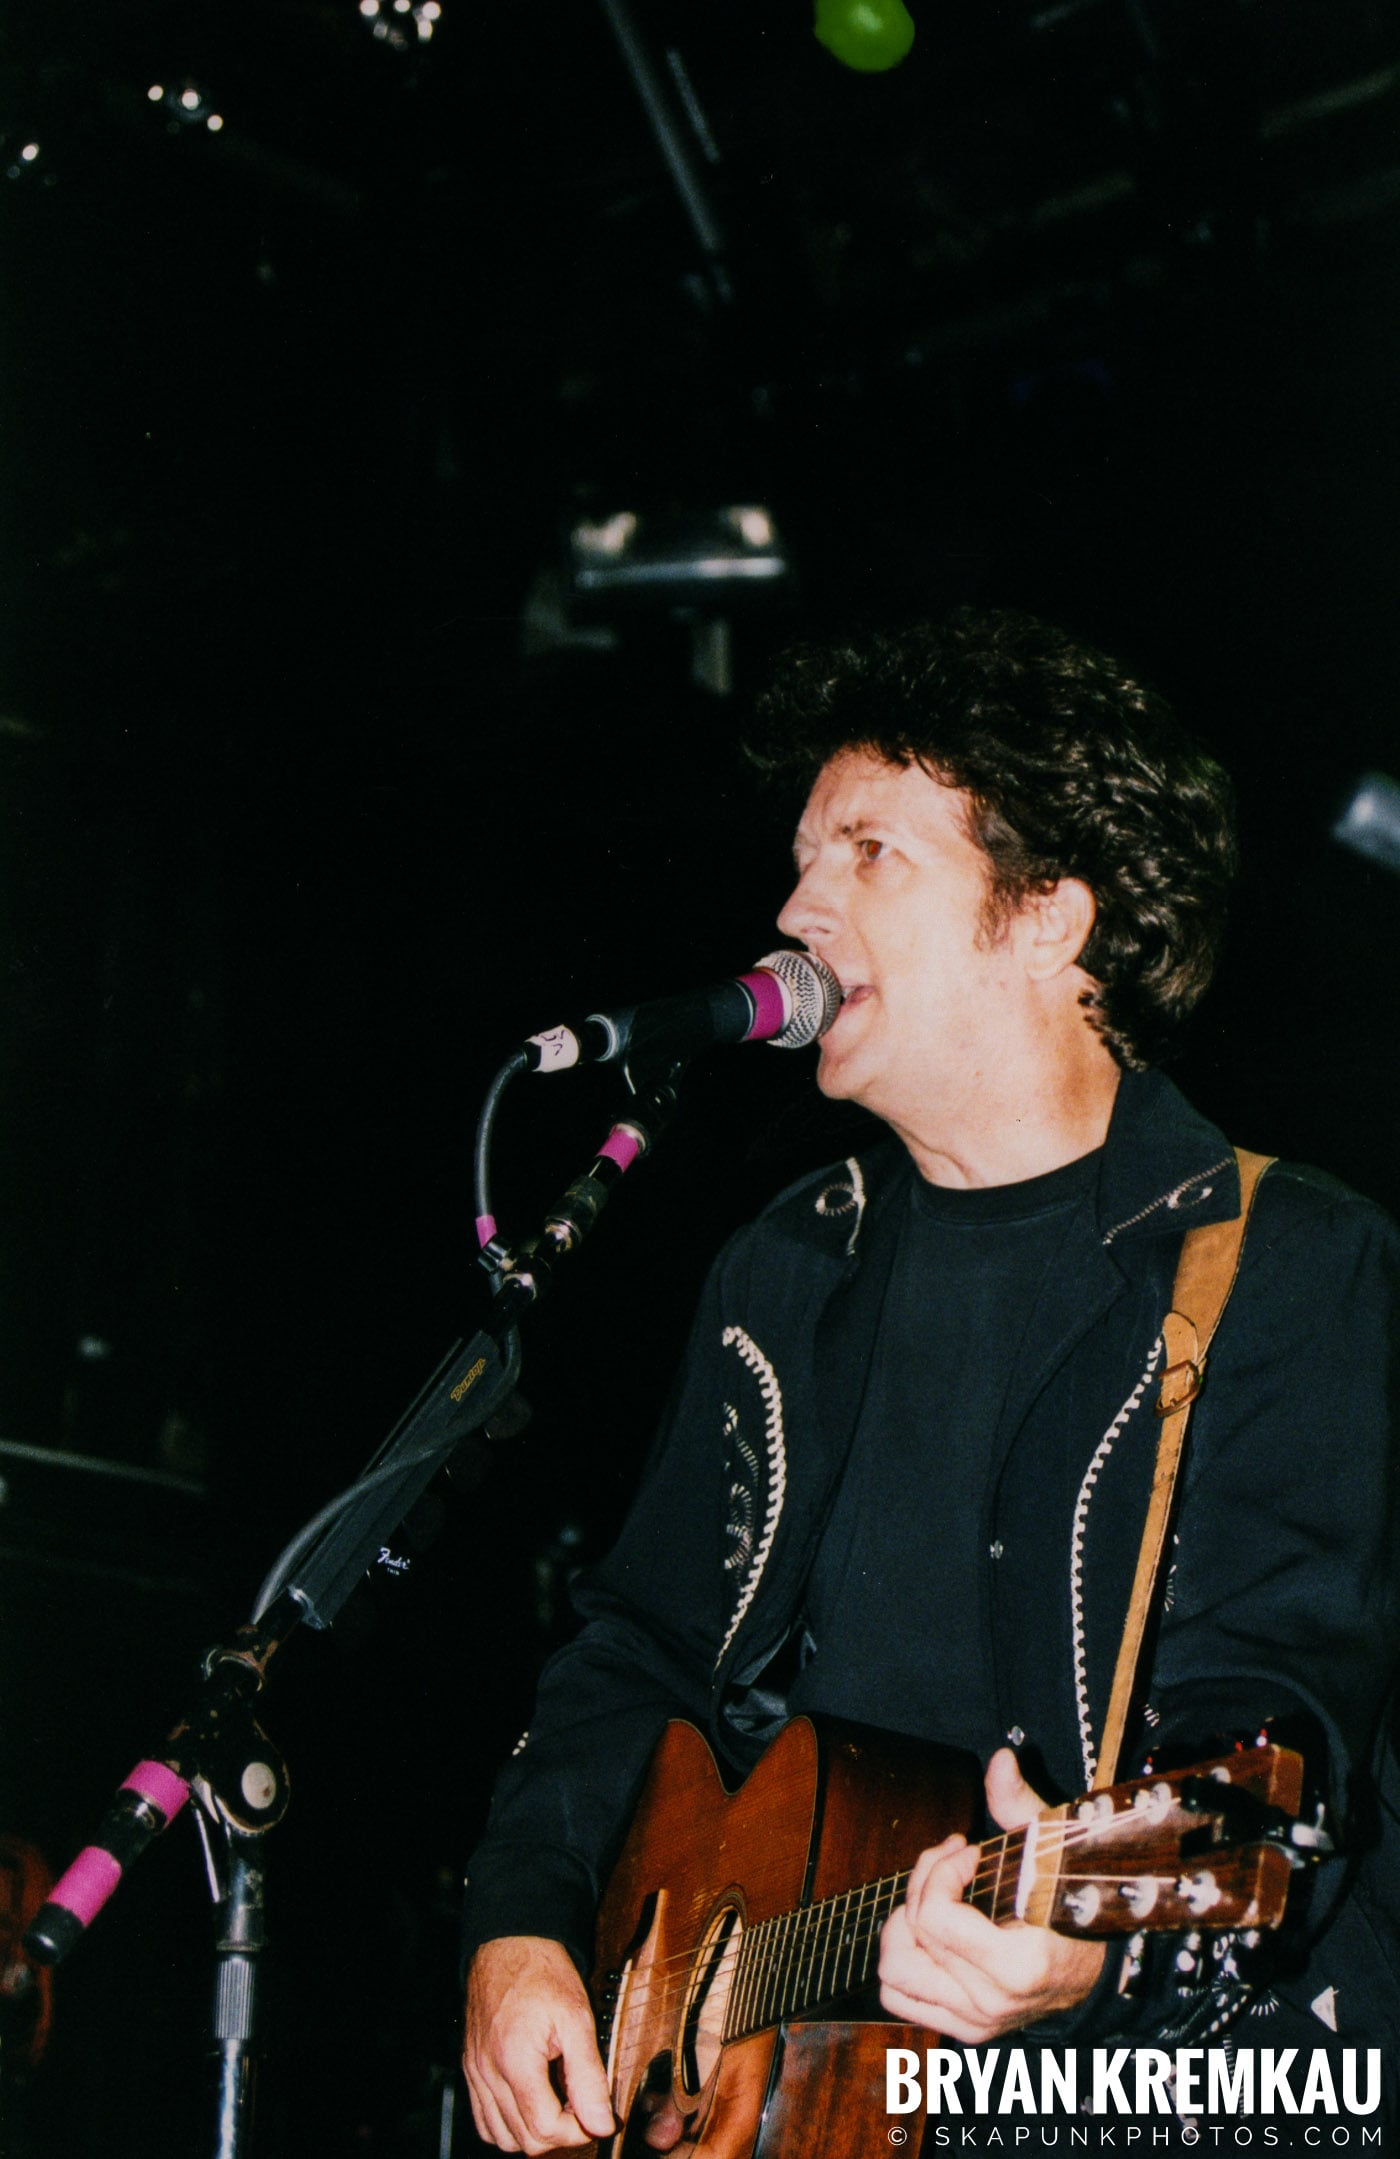 Willie Nile @ Irving Plaza, NYC - 10.4.04 (5)